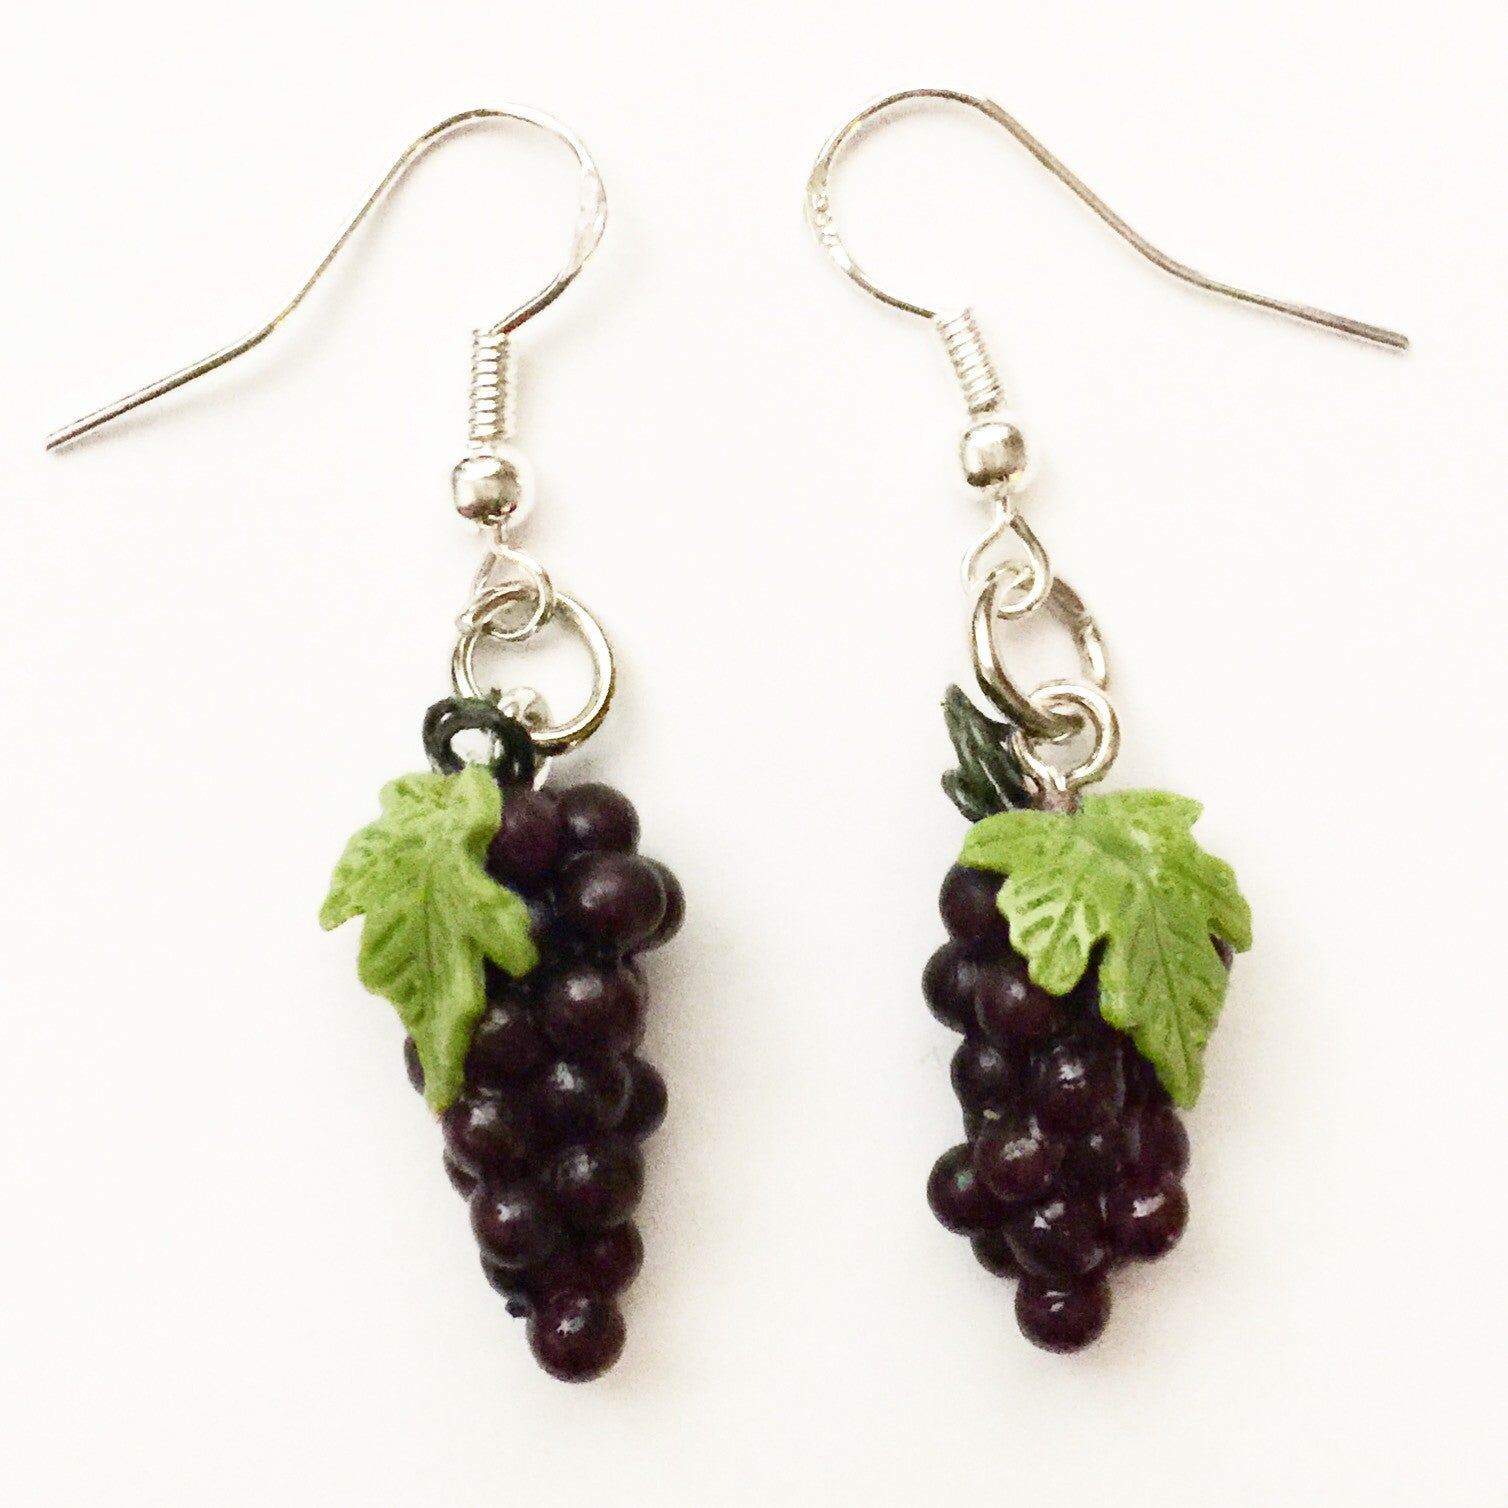 grapes earrings - Jillicious charms and accessories